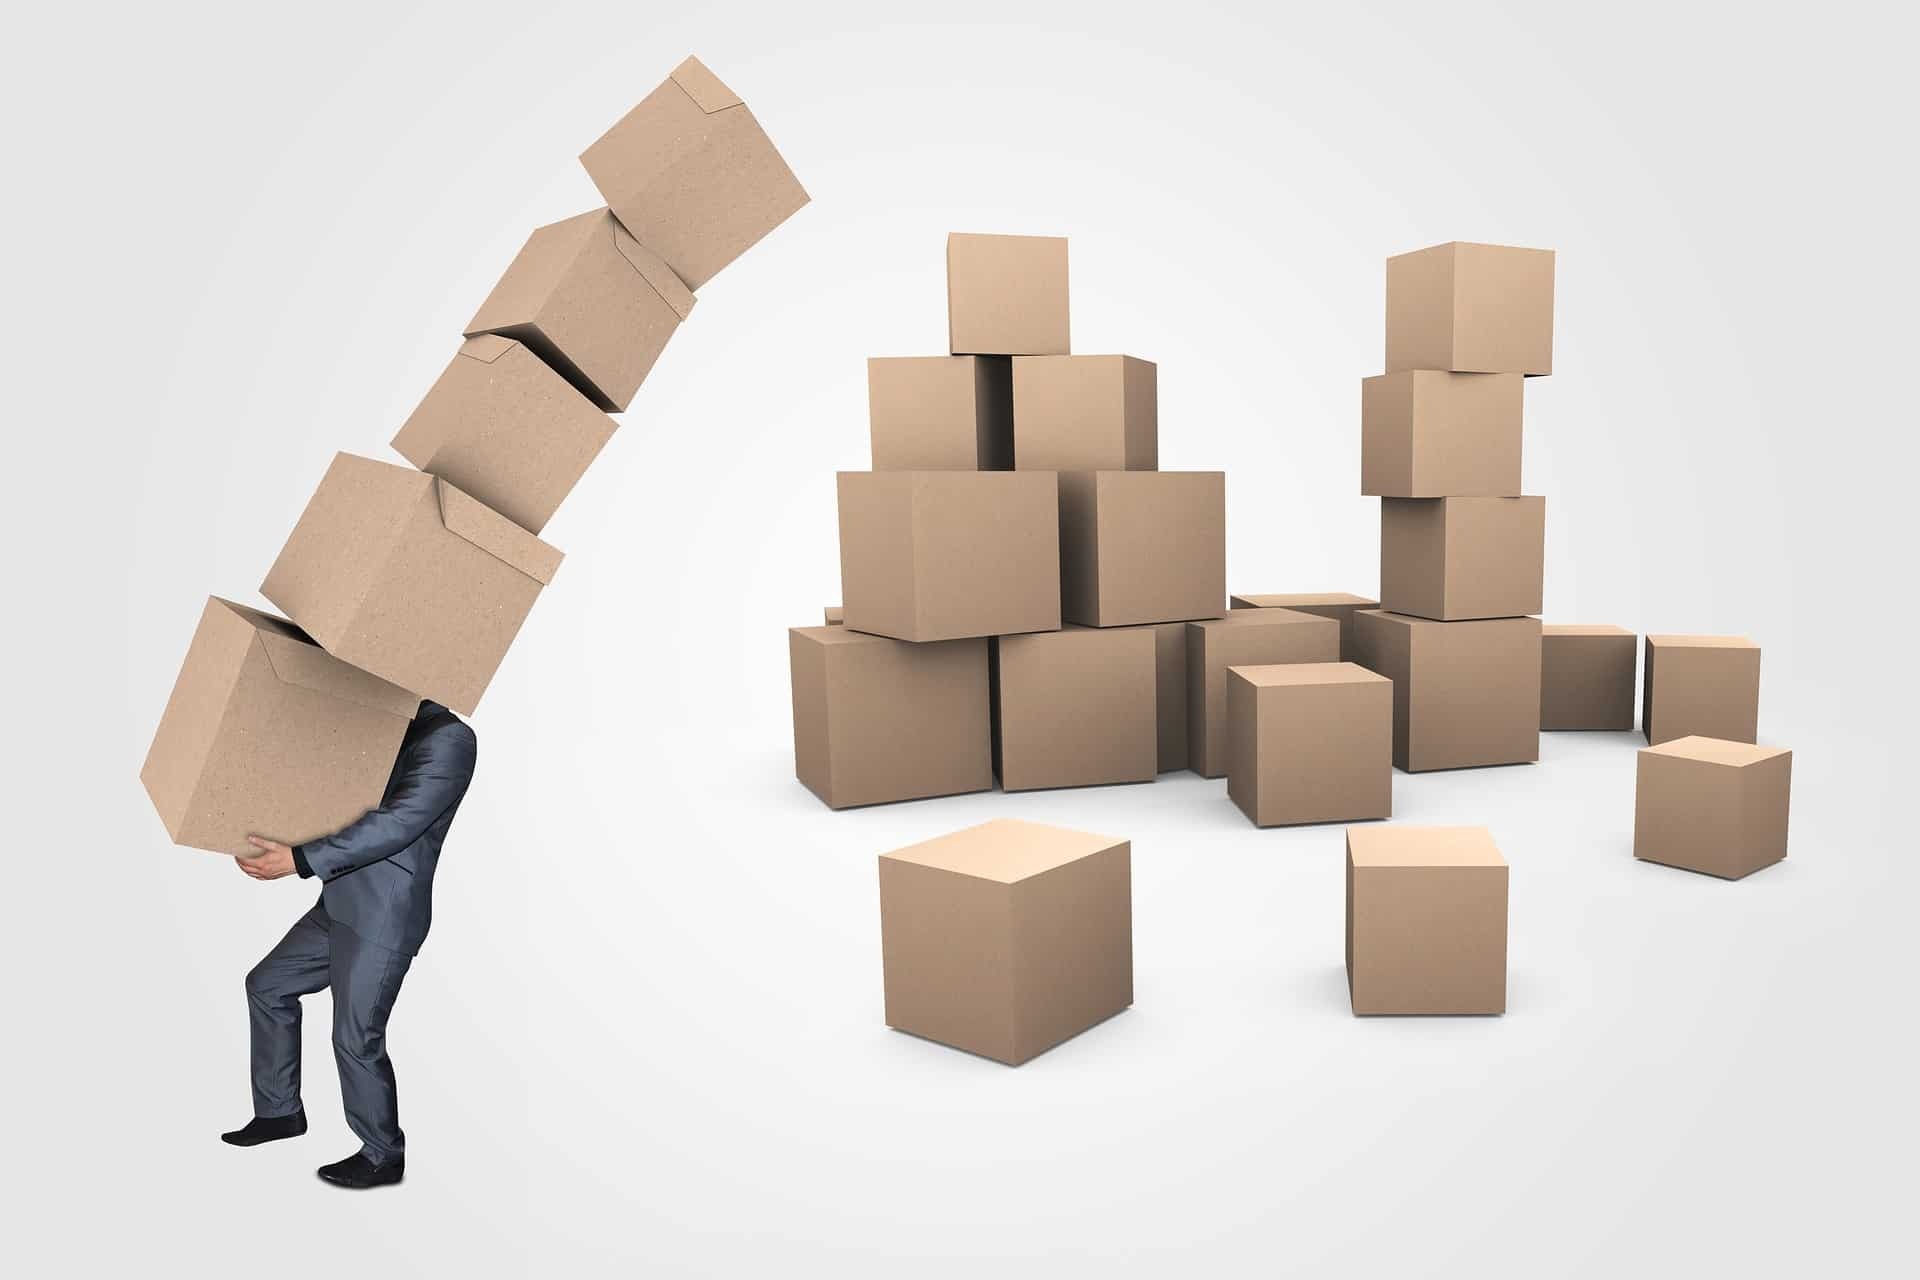 Pack Electronic Devices And Prepare Them For Shipping